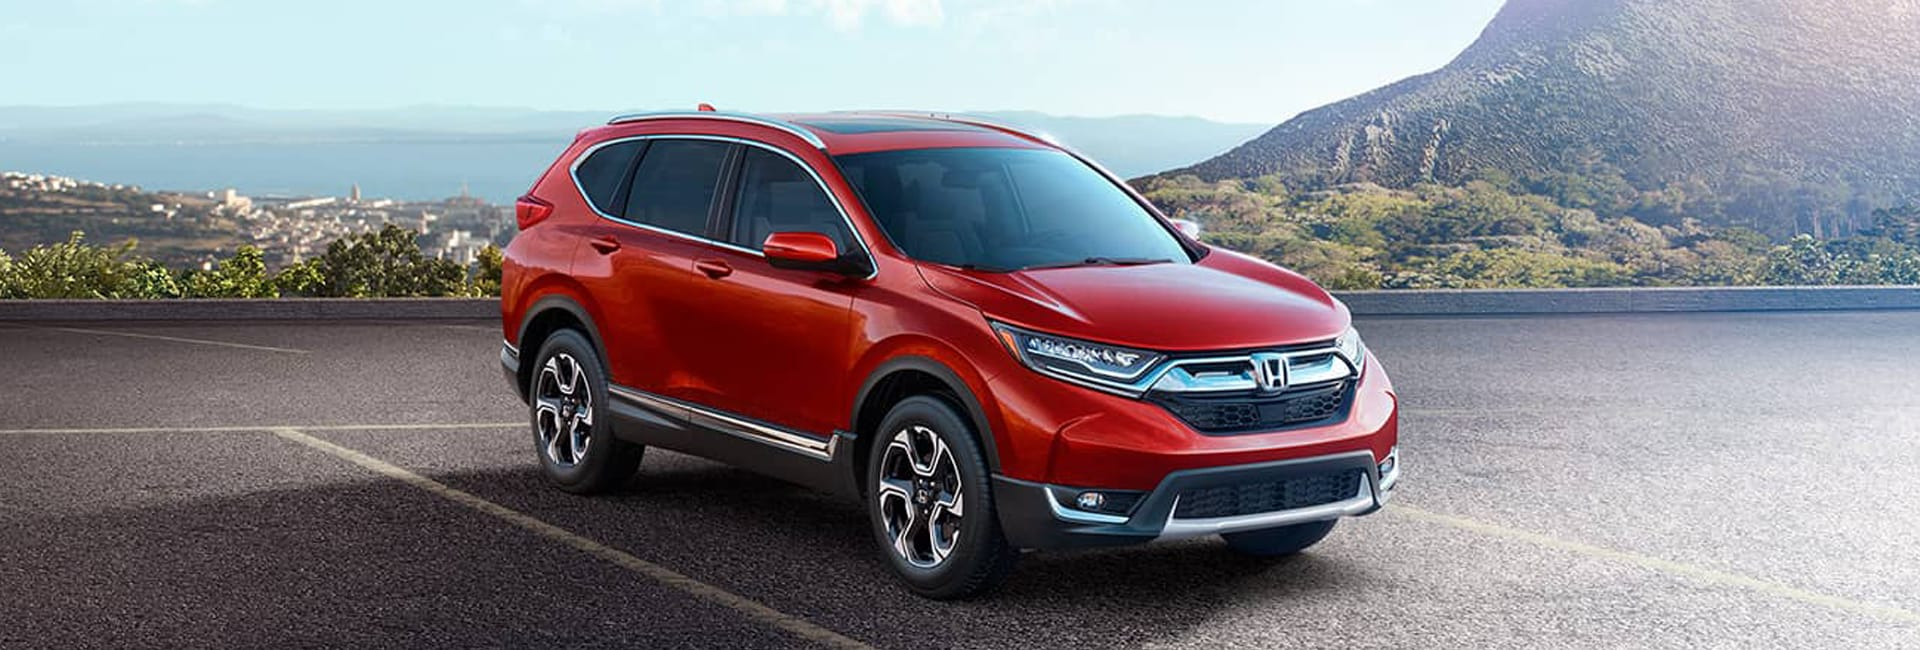 2017 Honda CR-V Exterior Features